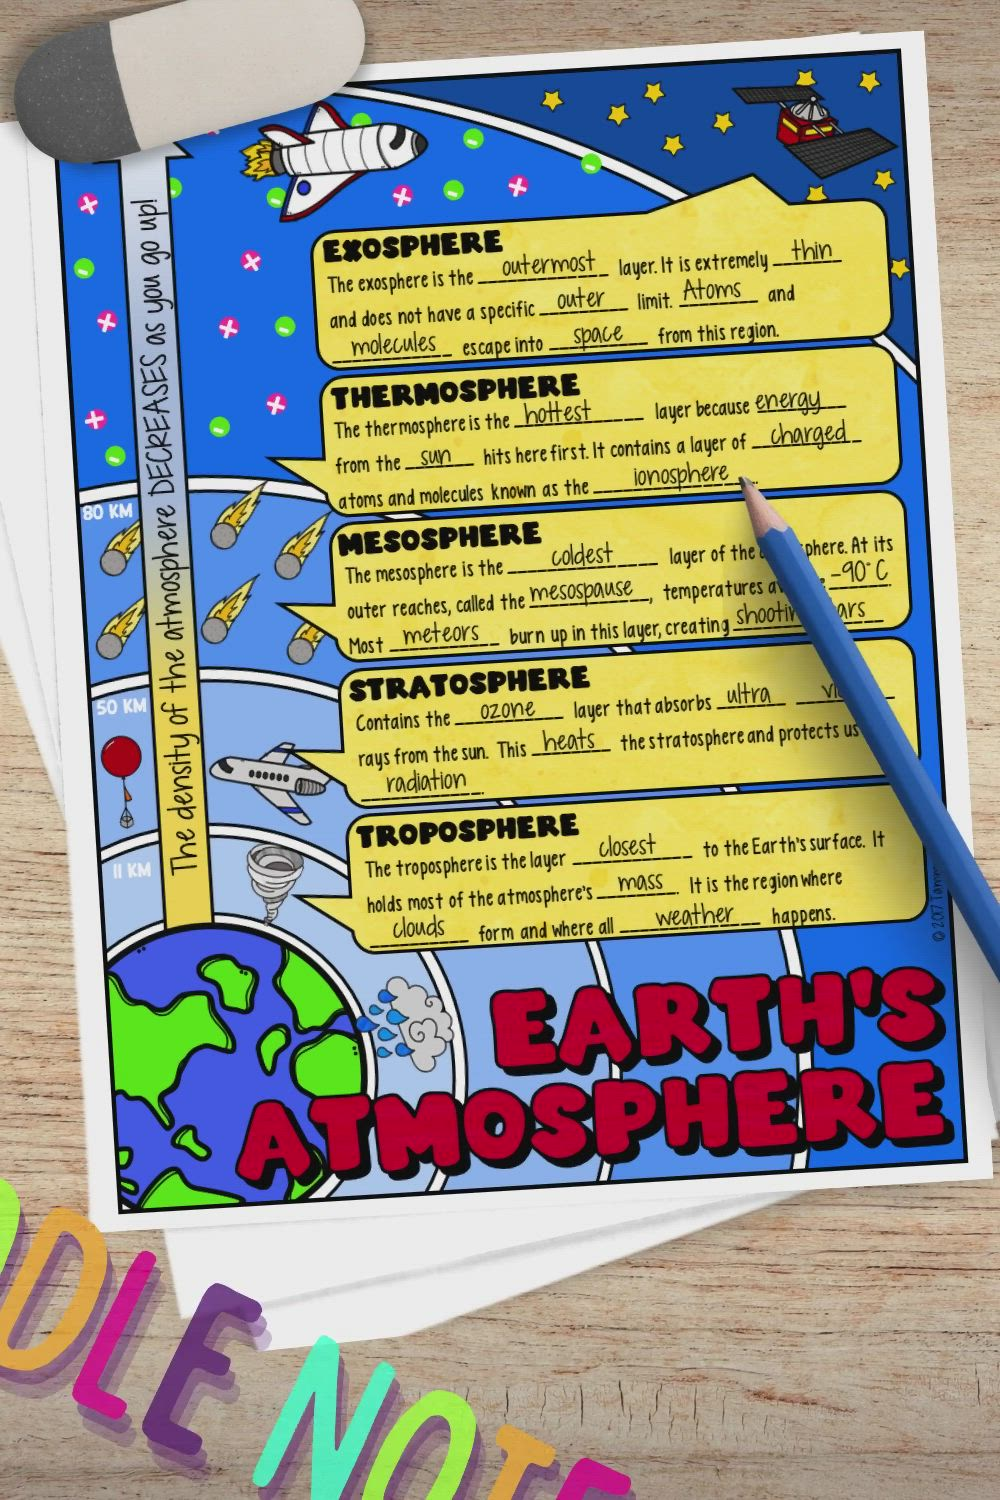 Earth S Atmosphere Doodle Note Activity For Middle School And Homeschool Science Video Doodle Notes Science Science Doodles Doodle Notes [ 1500 x 1000 Pixel ]